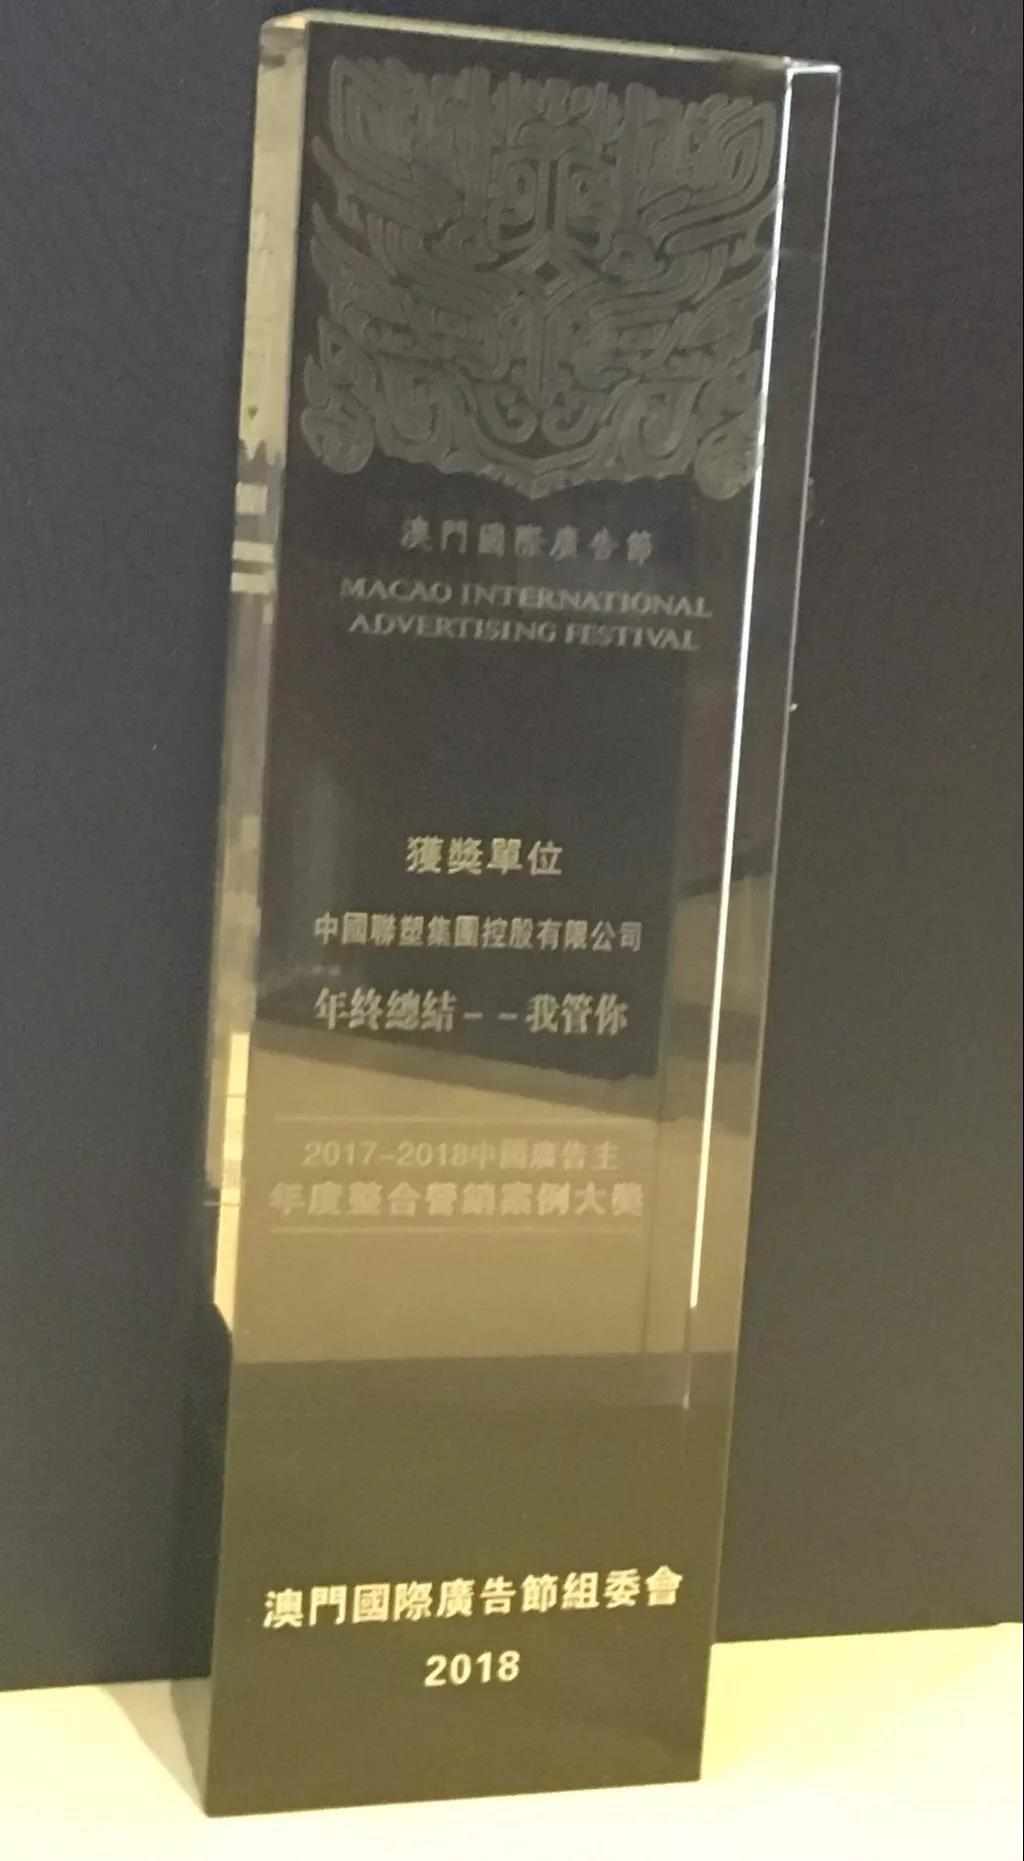 China Adertisers' Integrated Marketing Case of the Year 2017-2018